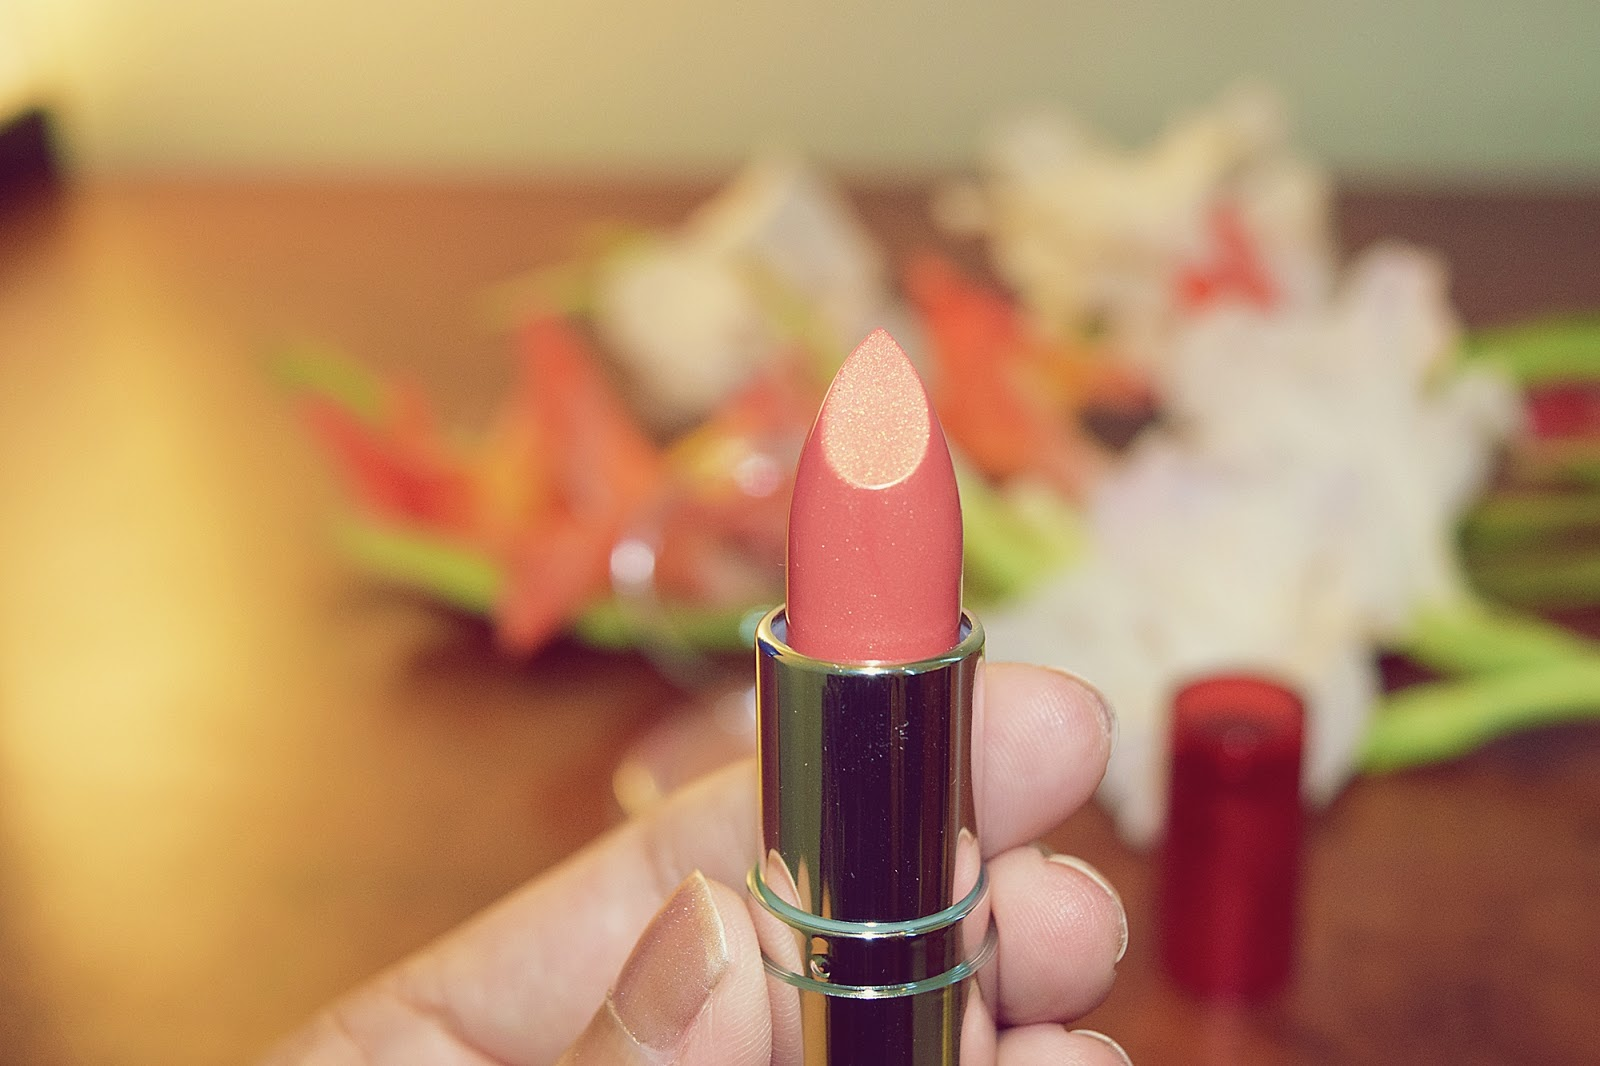 The Body Shop Color Crush Lipstick 140 Make My Heart Gleam